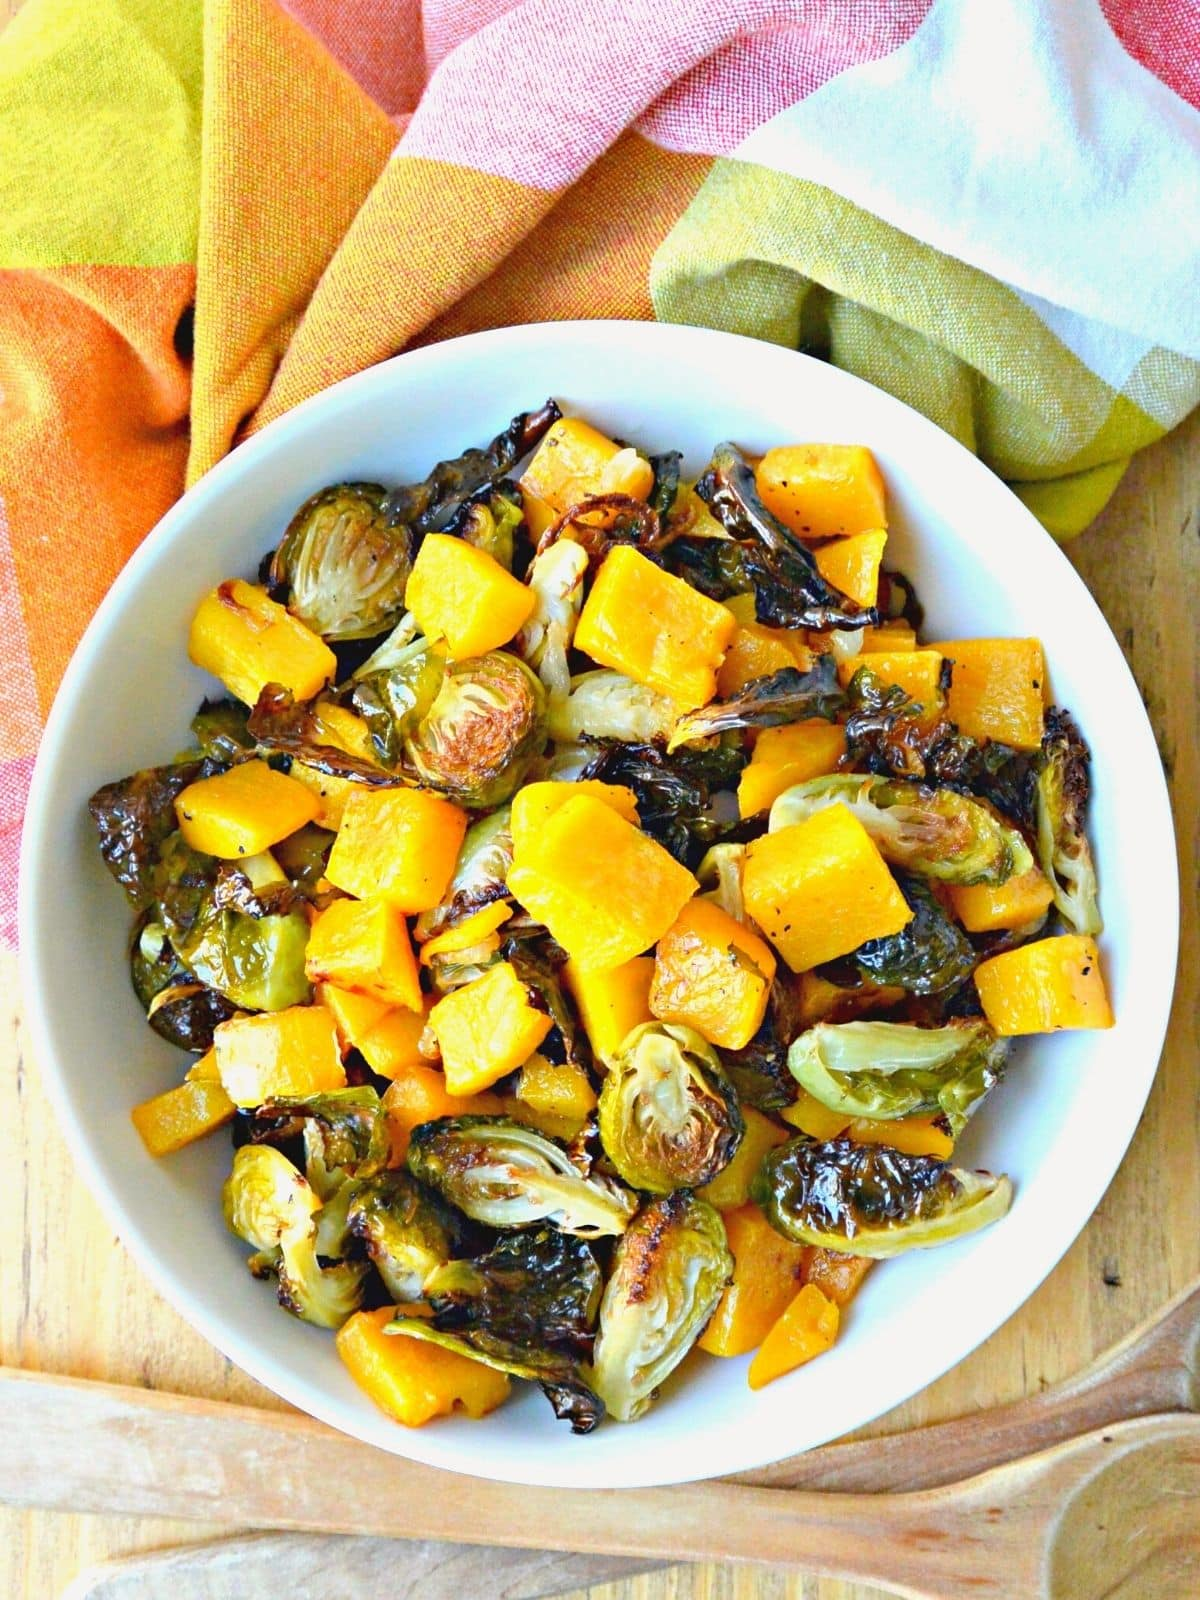 Bowl of roasted butternut squash and Brussels sprouts with an orange plaid napkin.